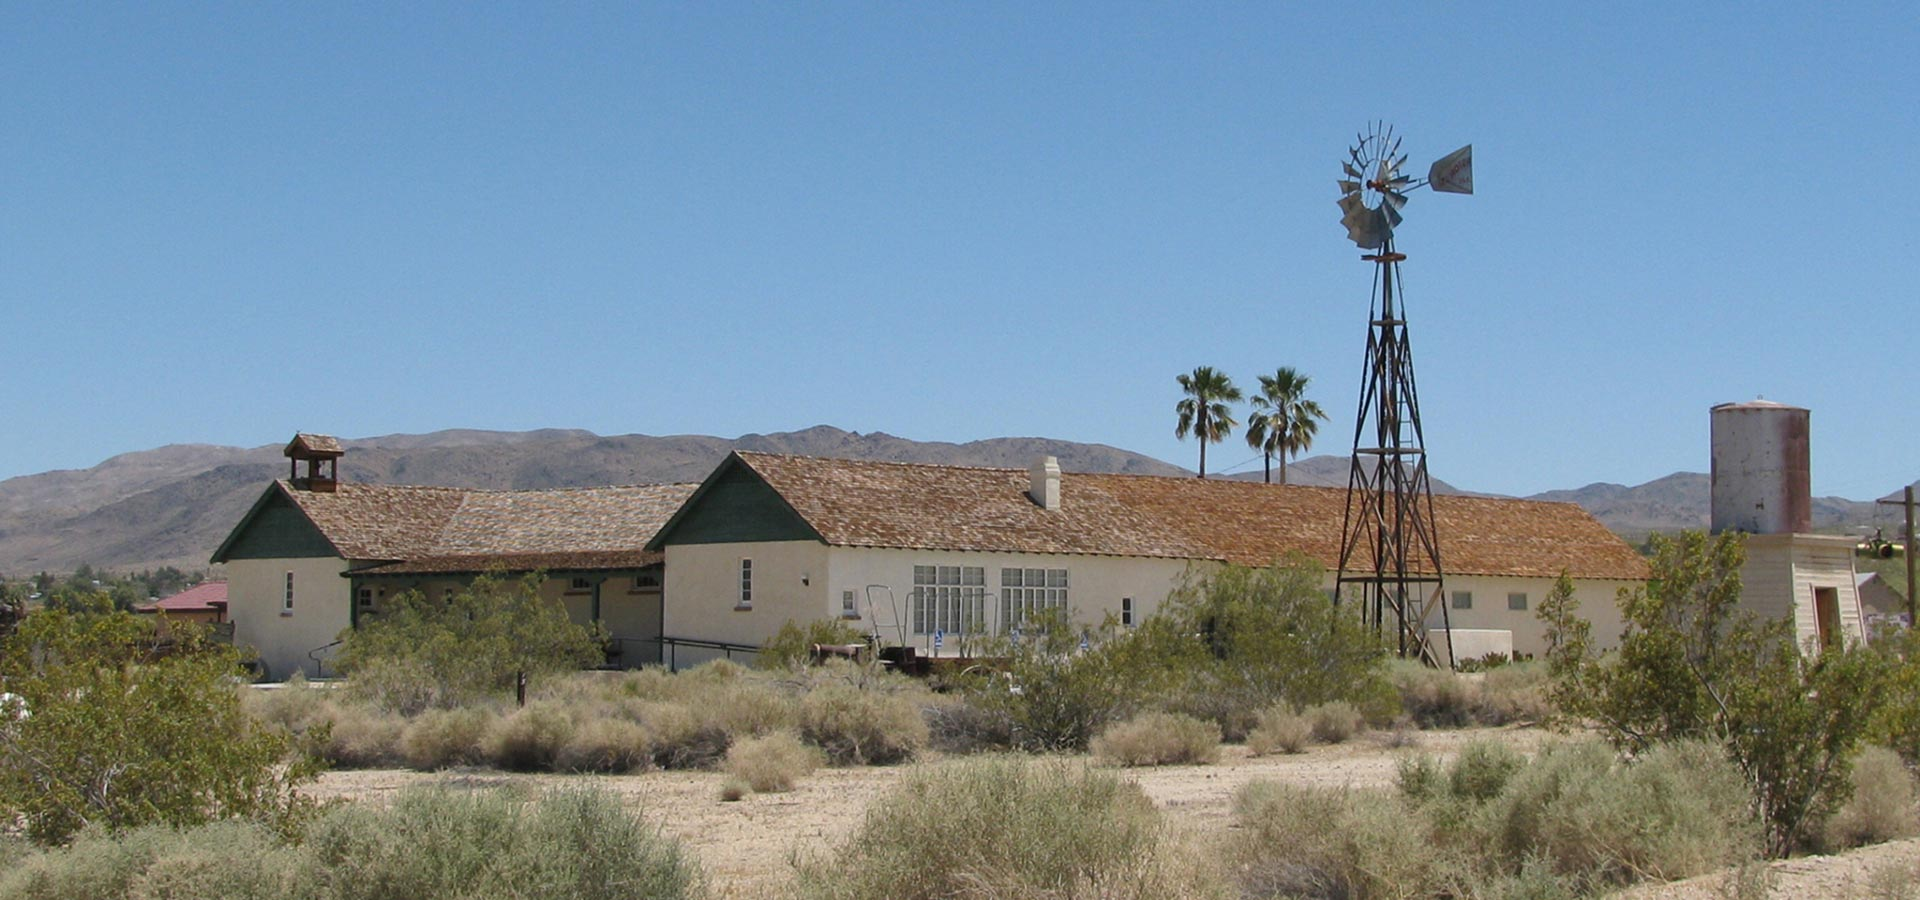 29 Palms Historical Society & Museum